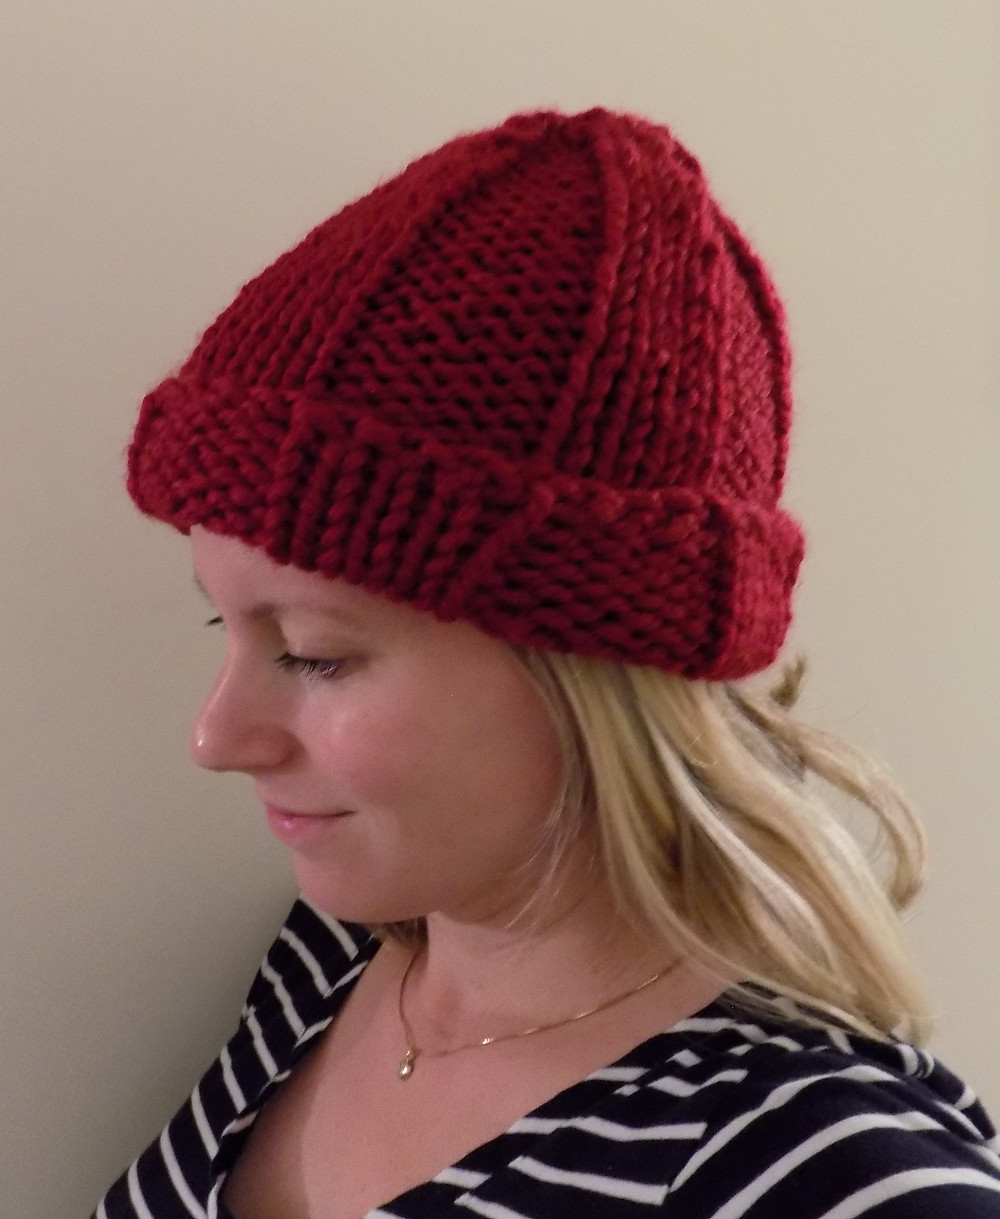 knitted hat, hygge bug